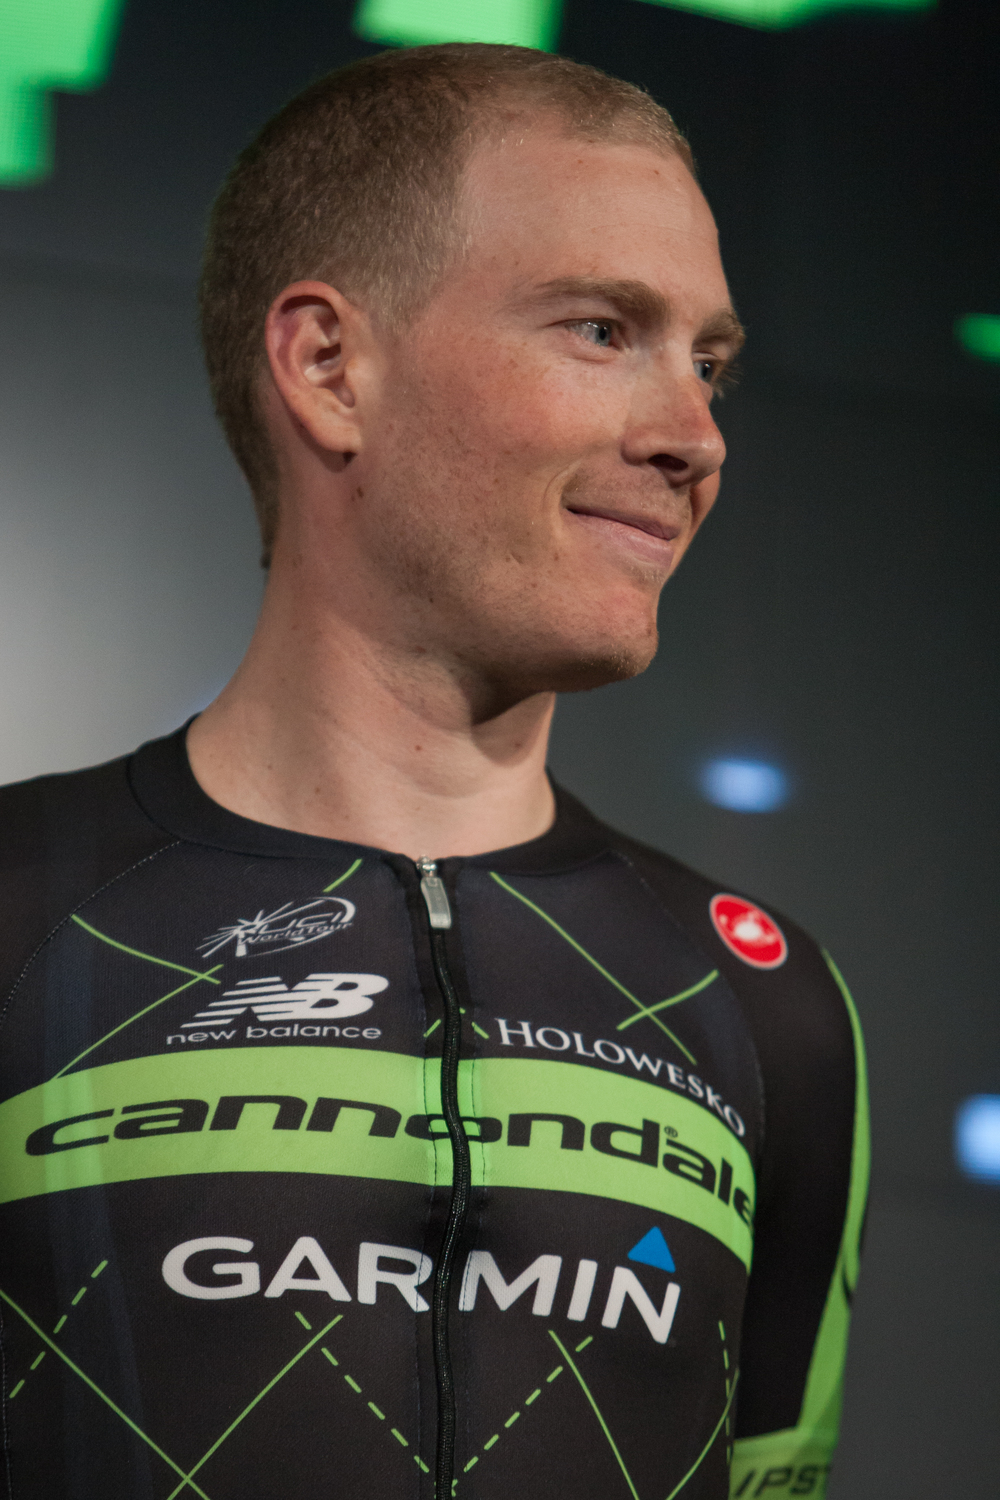 With the pressure of being a team leader for Cannondale-Garmin Pro Cycling in 2015, Andrew Telansky appears ready for the season.